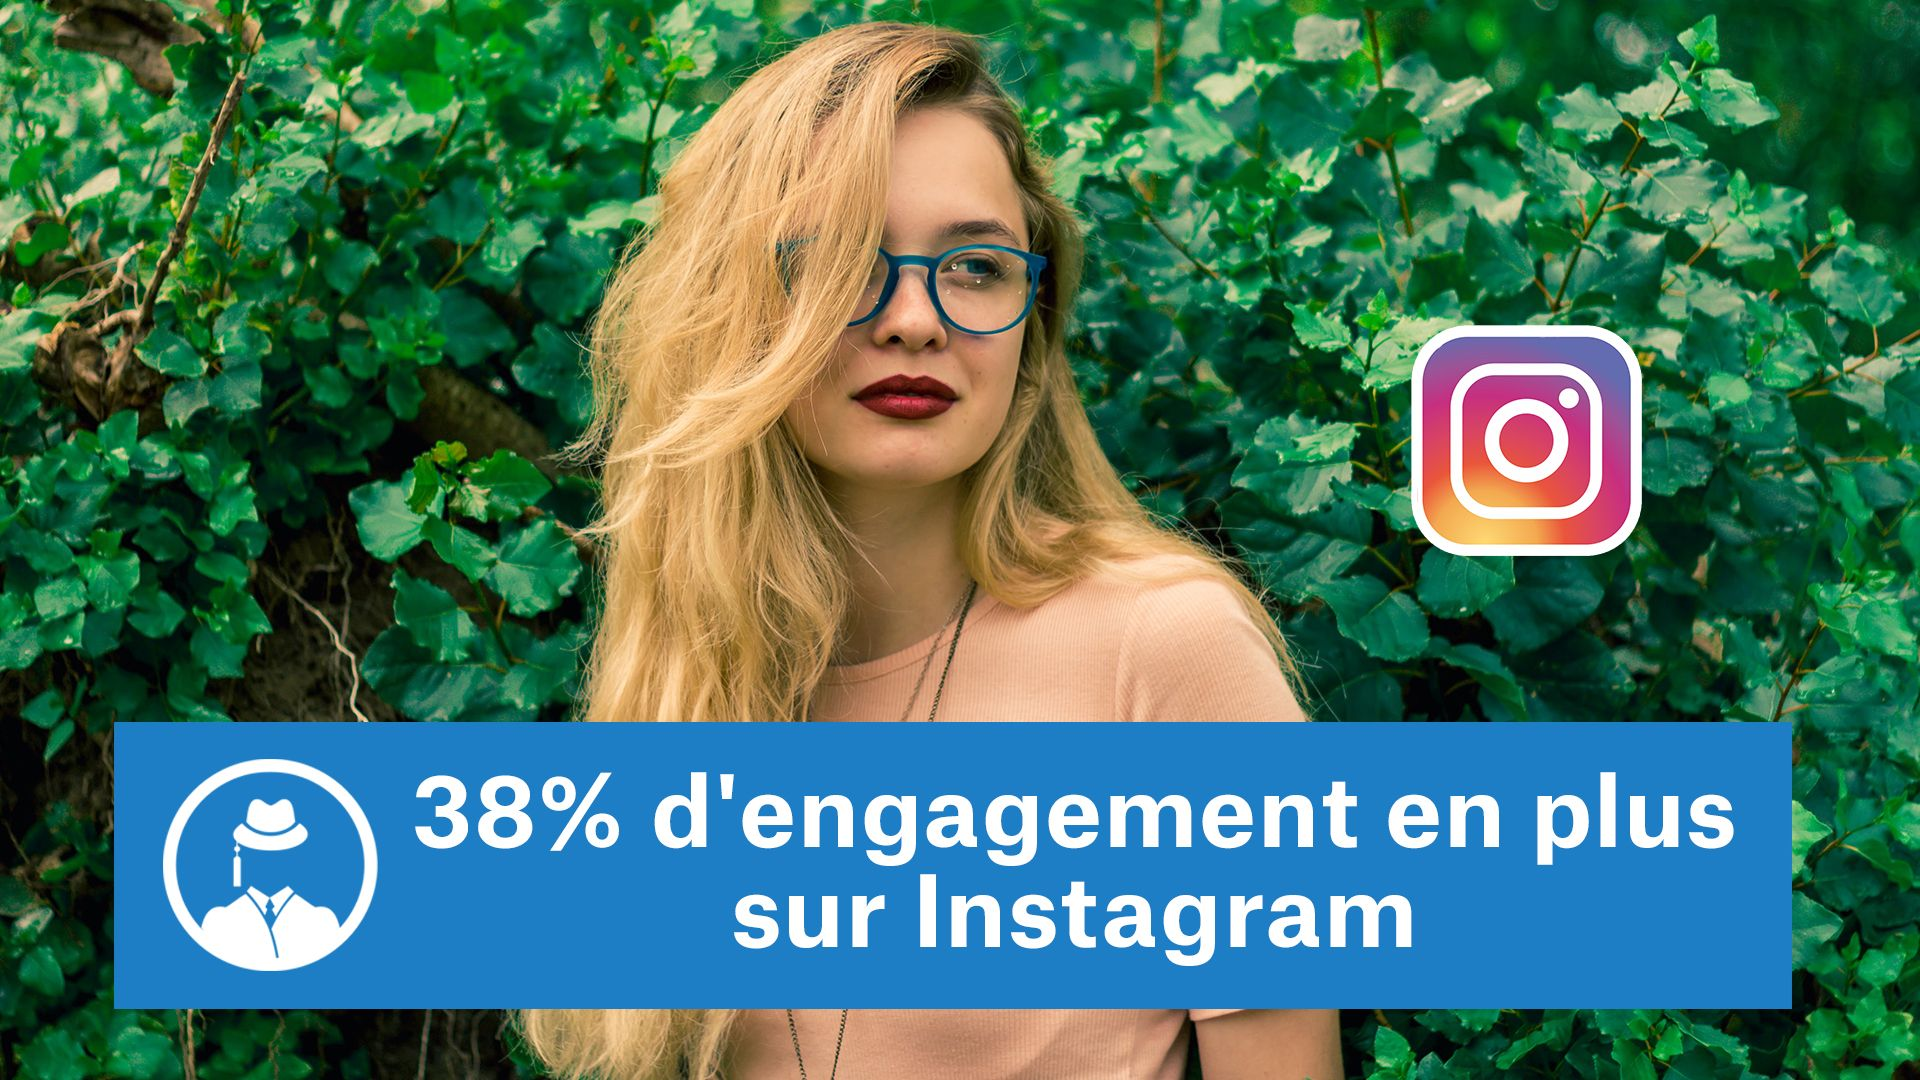 38% d'engagement en plus sur Instagram #GrowthHacking #WebMarketing #FormationGrowthHacking #CentreDeFormationFrance #TunnelAARRR #AARRR #SocialMedia #CommunityManagement #SEO #MarketingDigital #SiteWeb